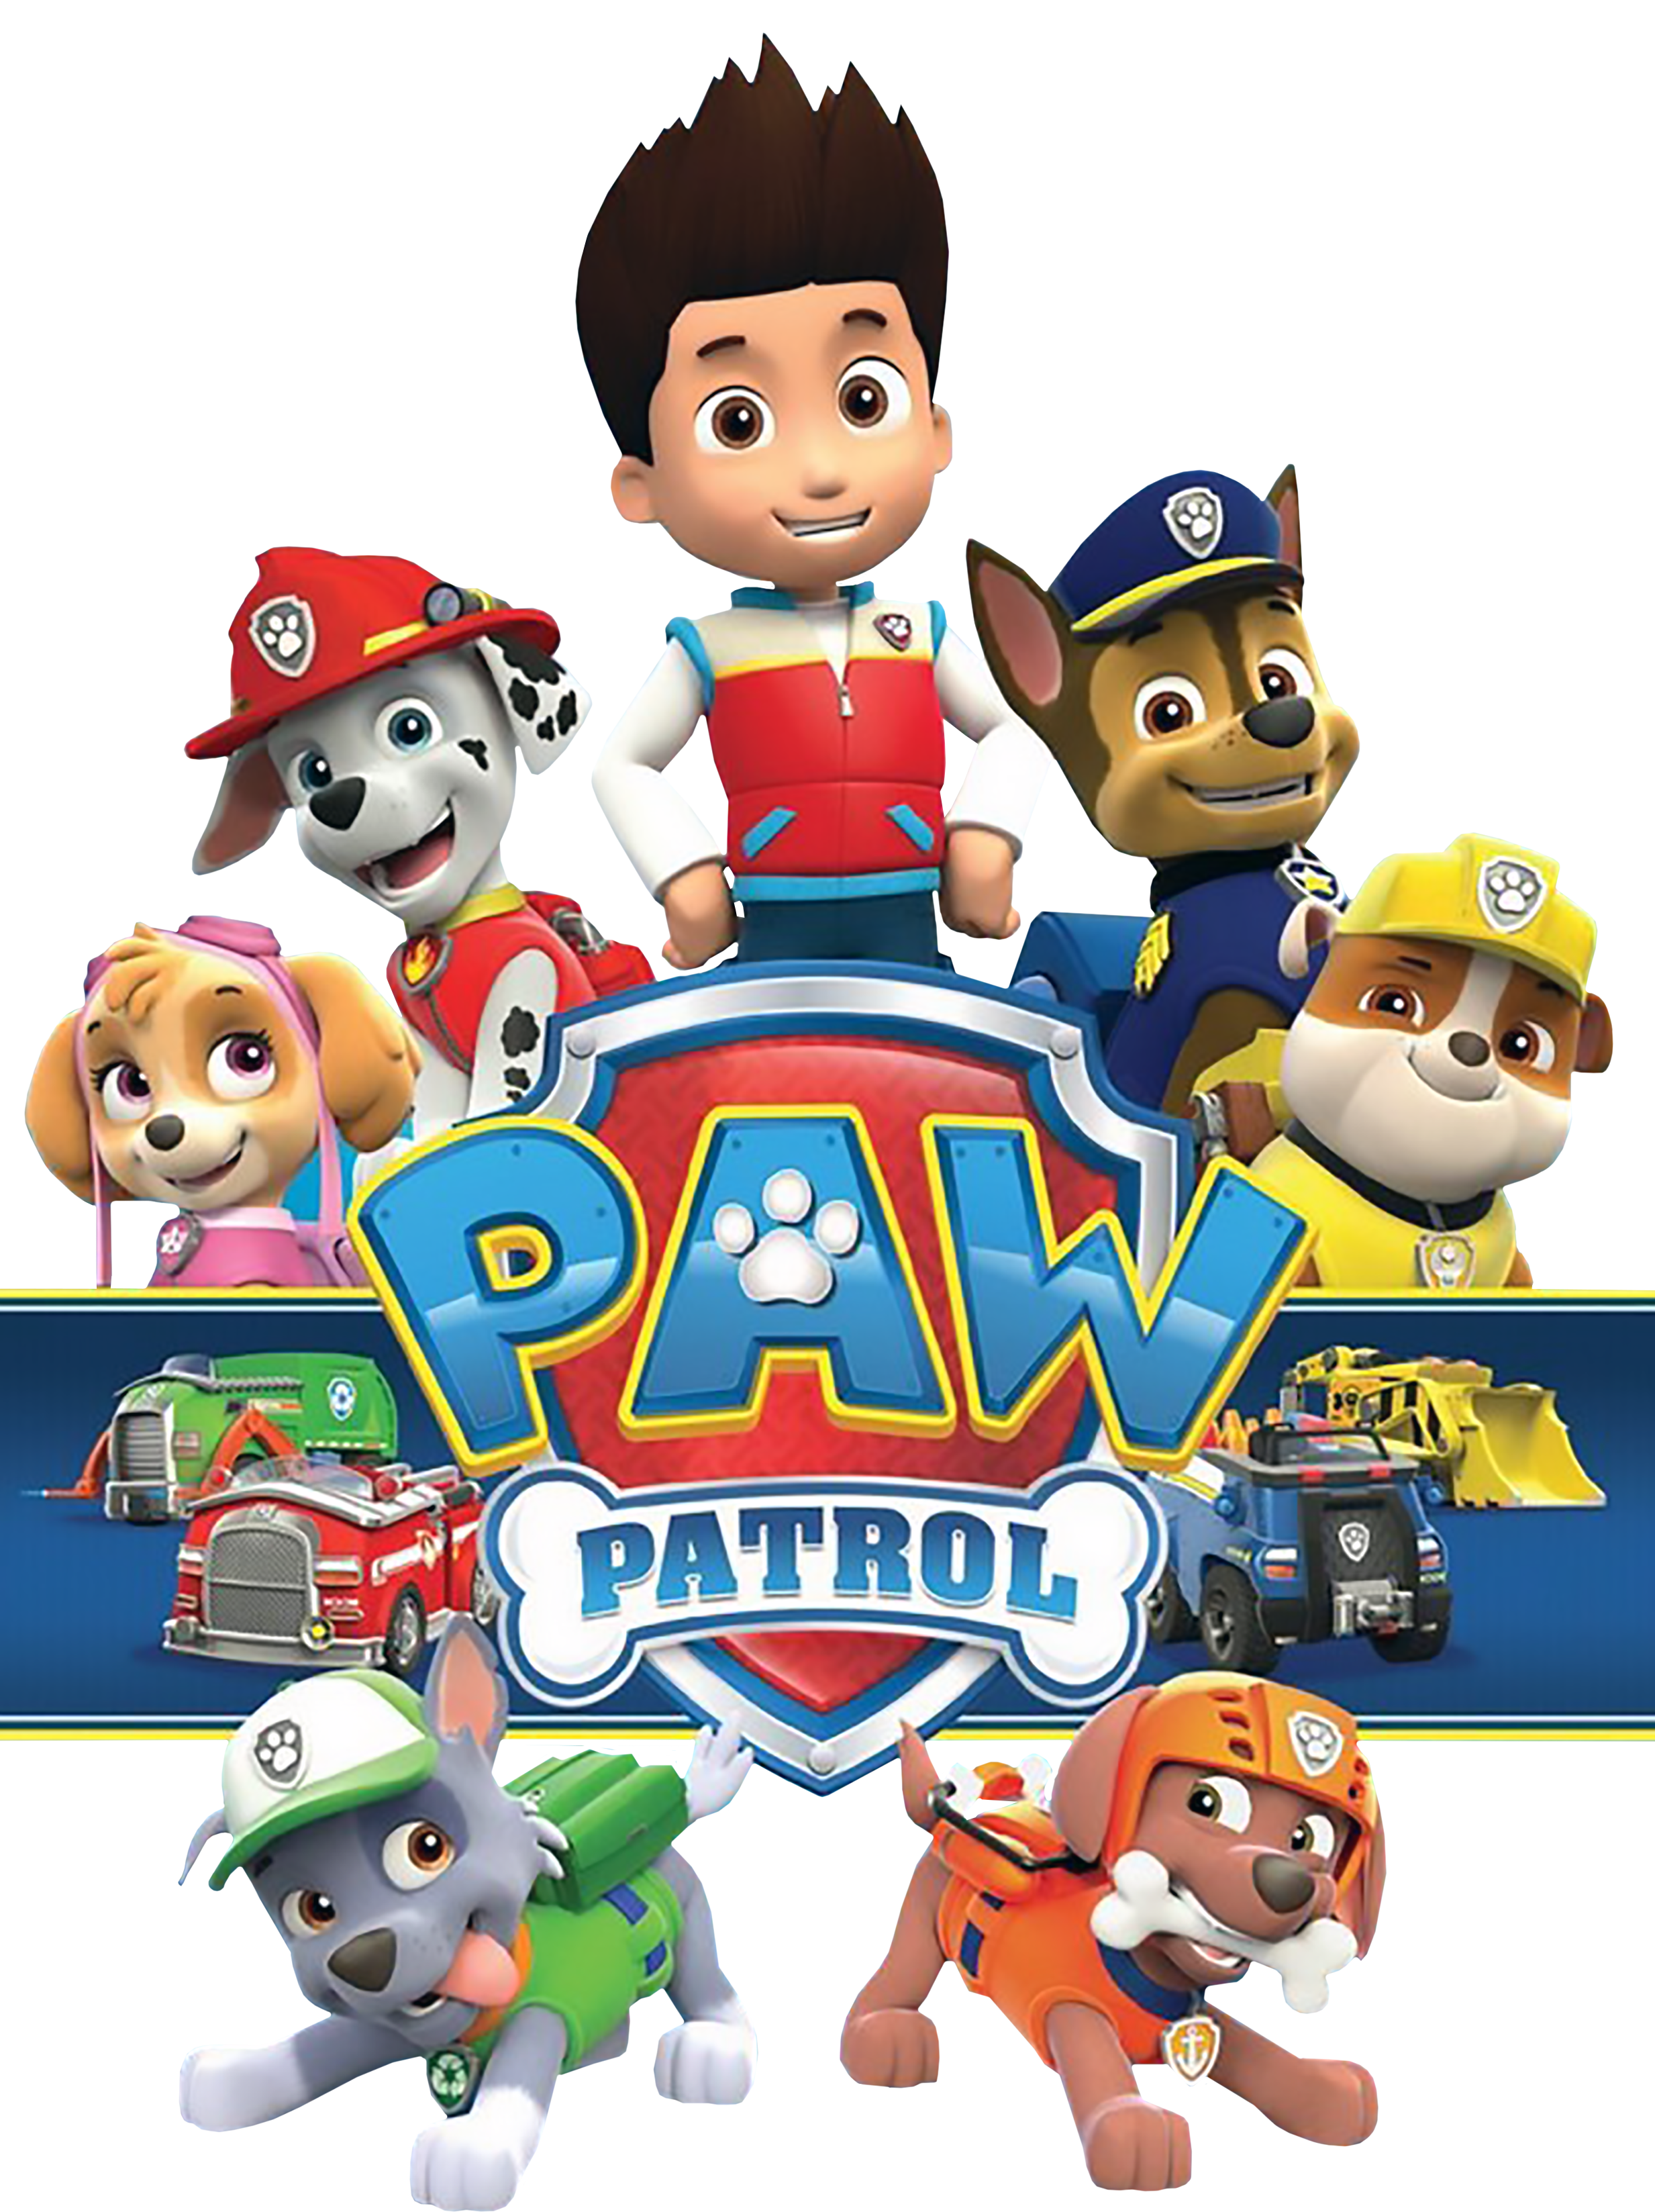 Paw patrol birthday png. Pin by heather grass